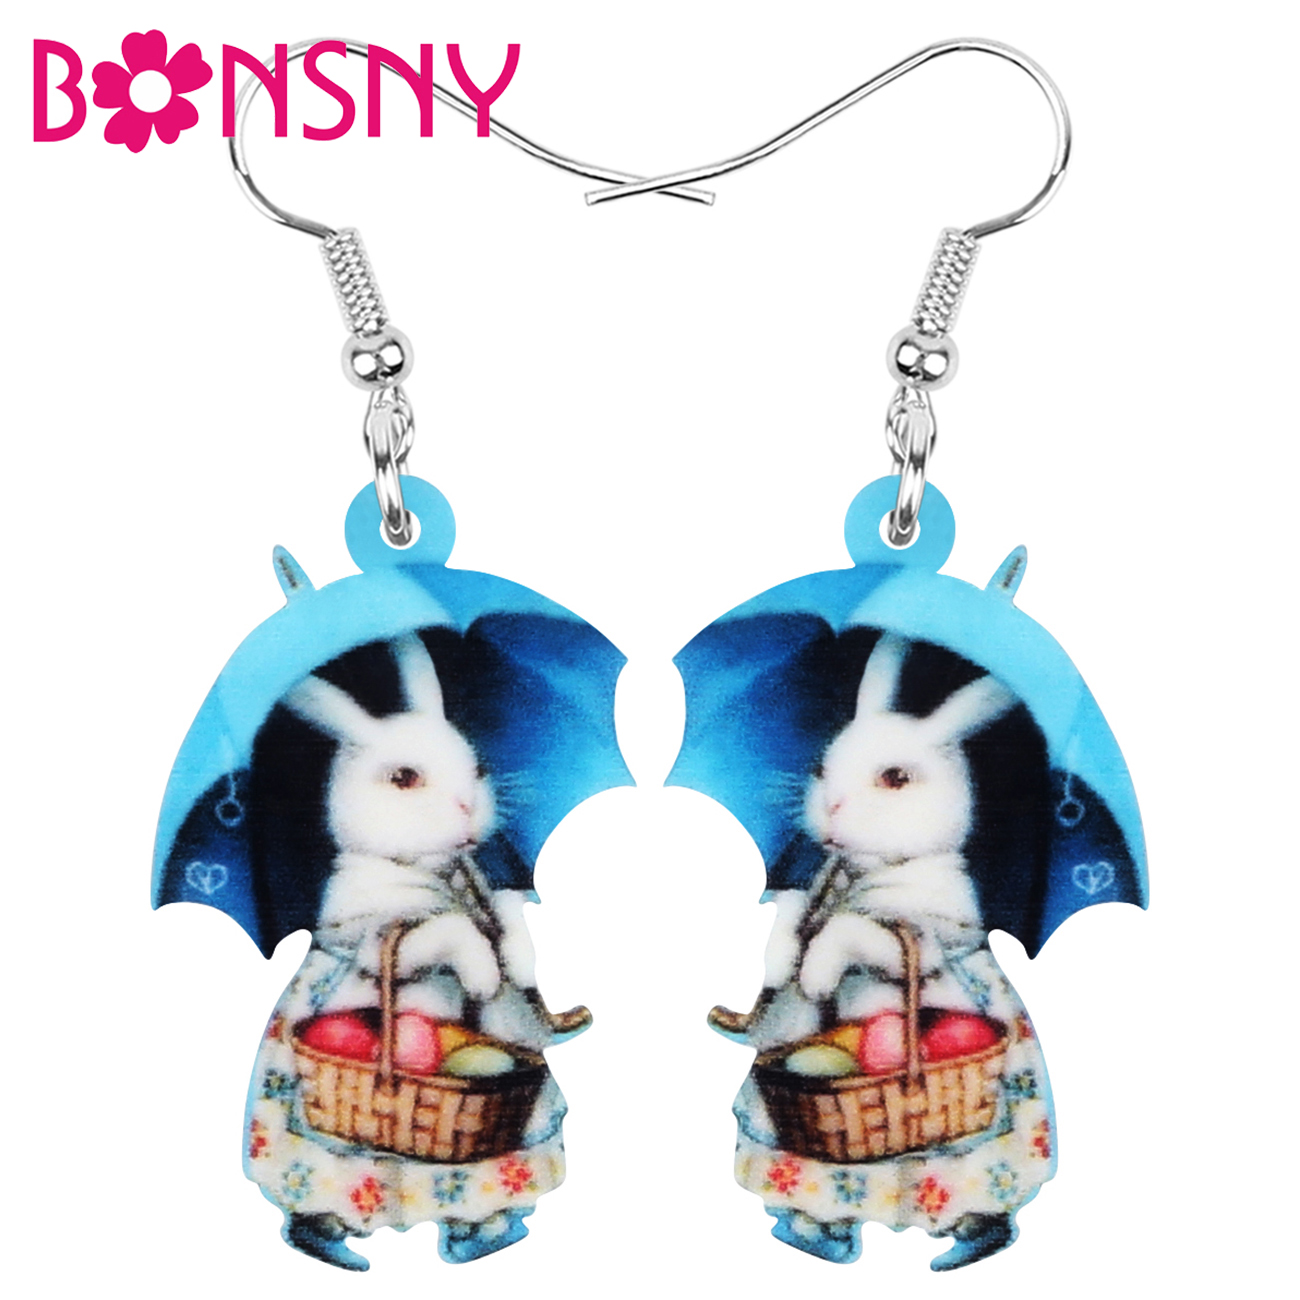 Bonsny Acrylic Easter Hare Rabbit Bunny Basket Umbrella Earrings Animal Dangle Drop Jewelry For Women Girls Classic Party Gift